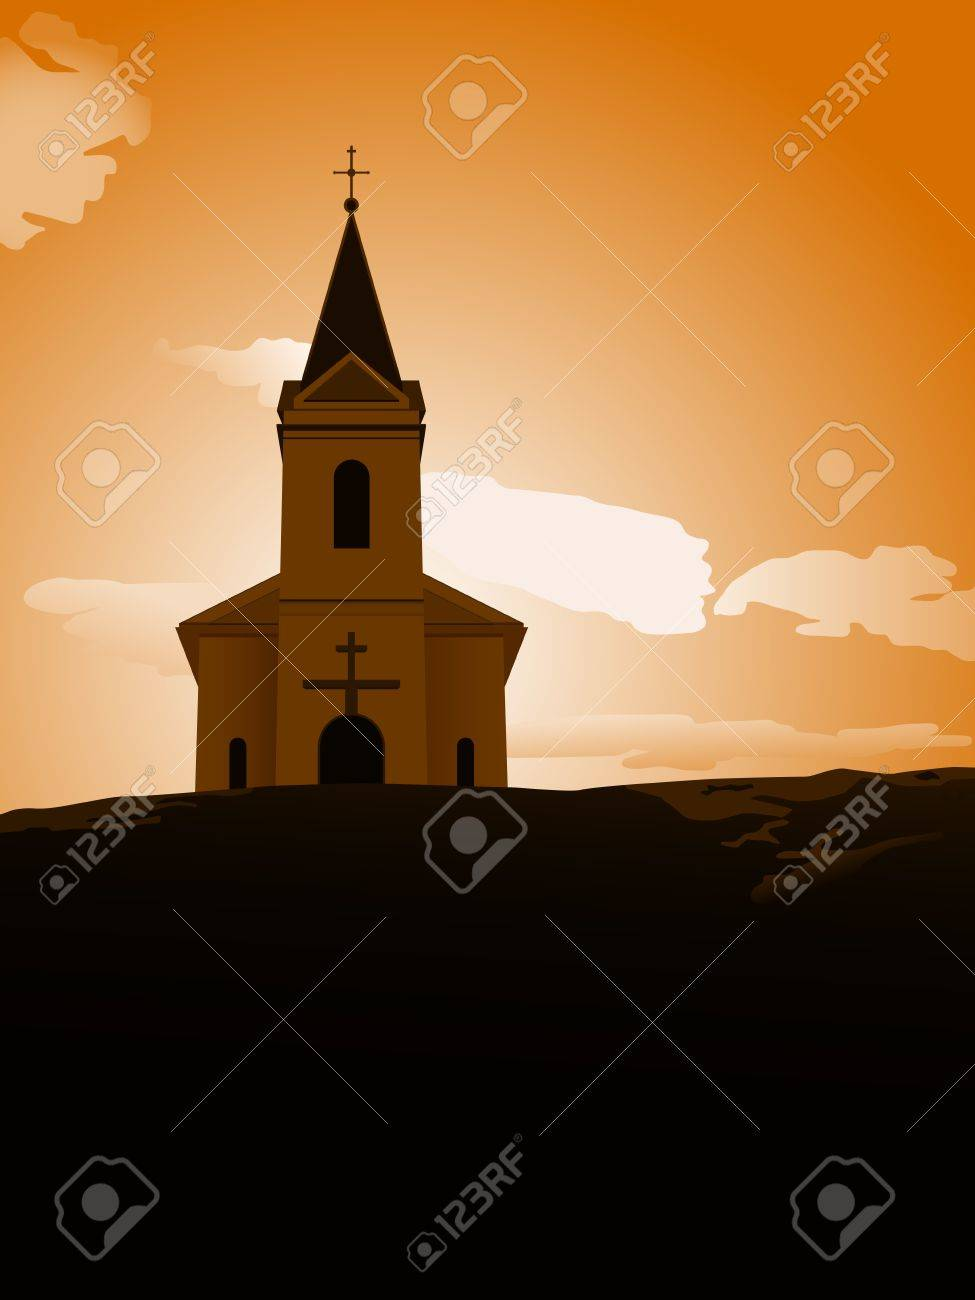 vector illustration of chapel on the hill in the sunset Stock Vector - 16847240